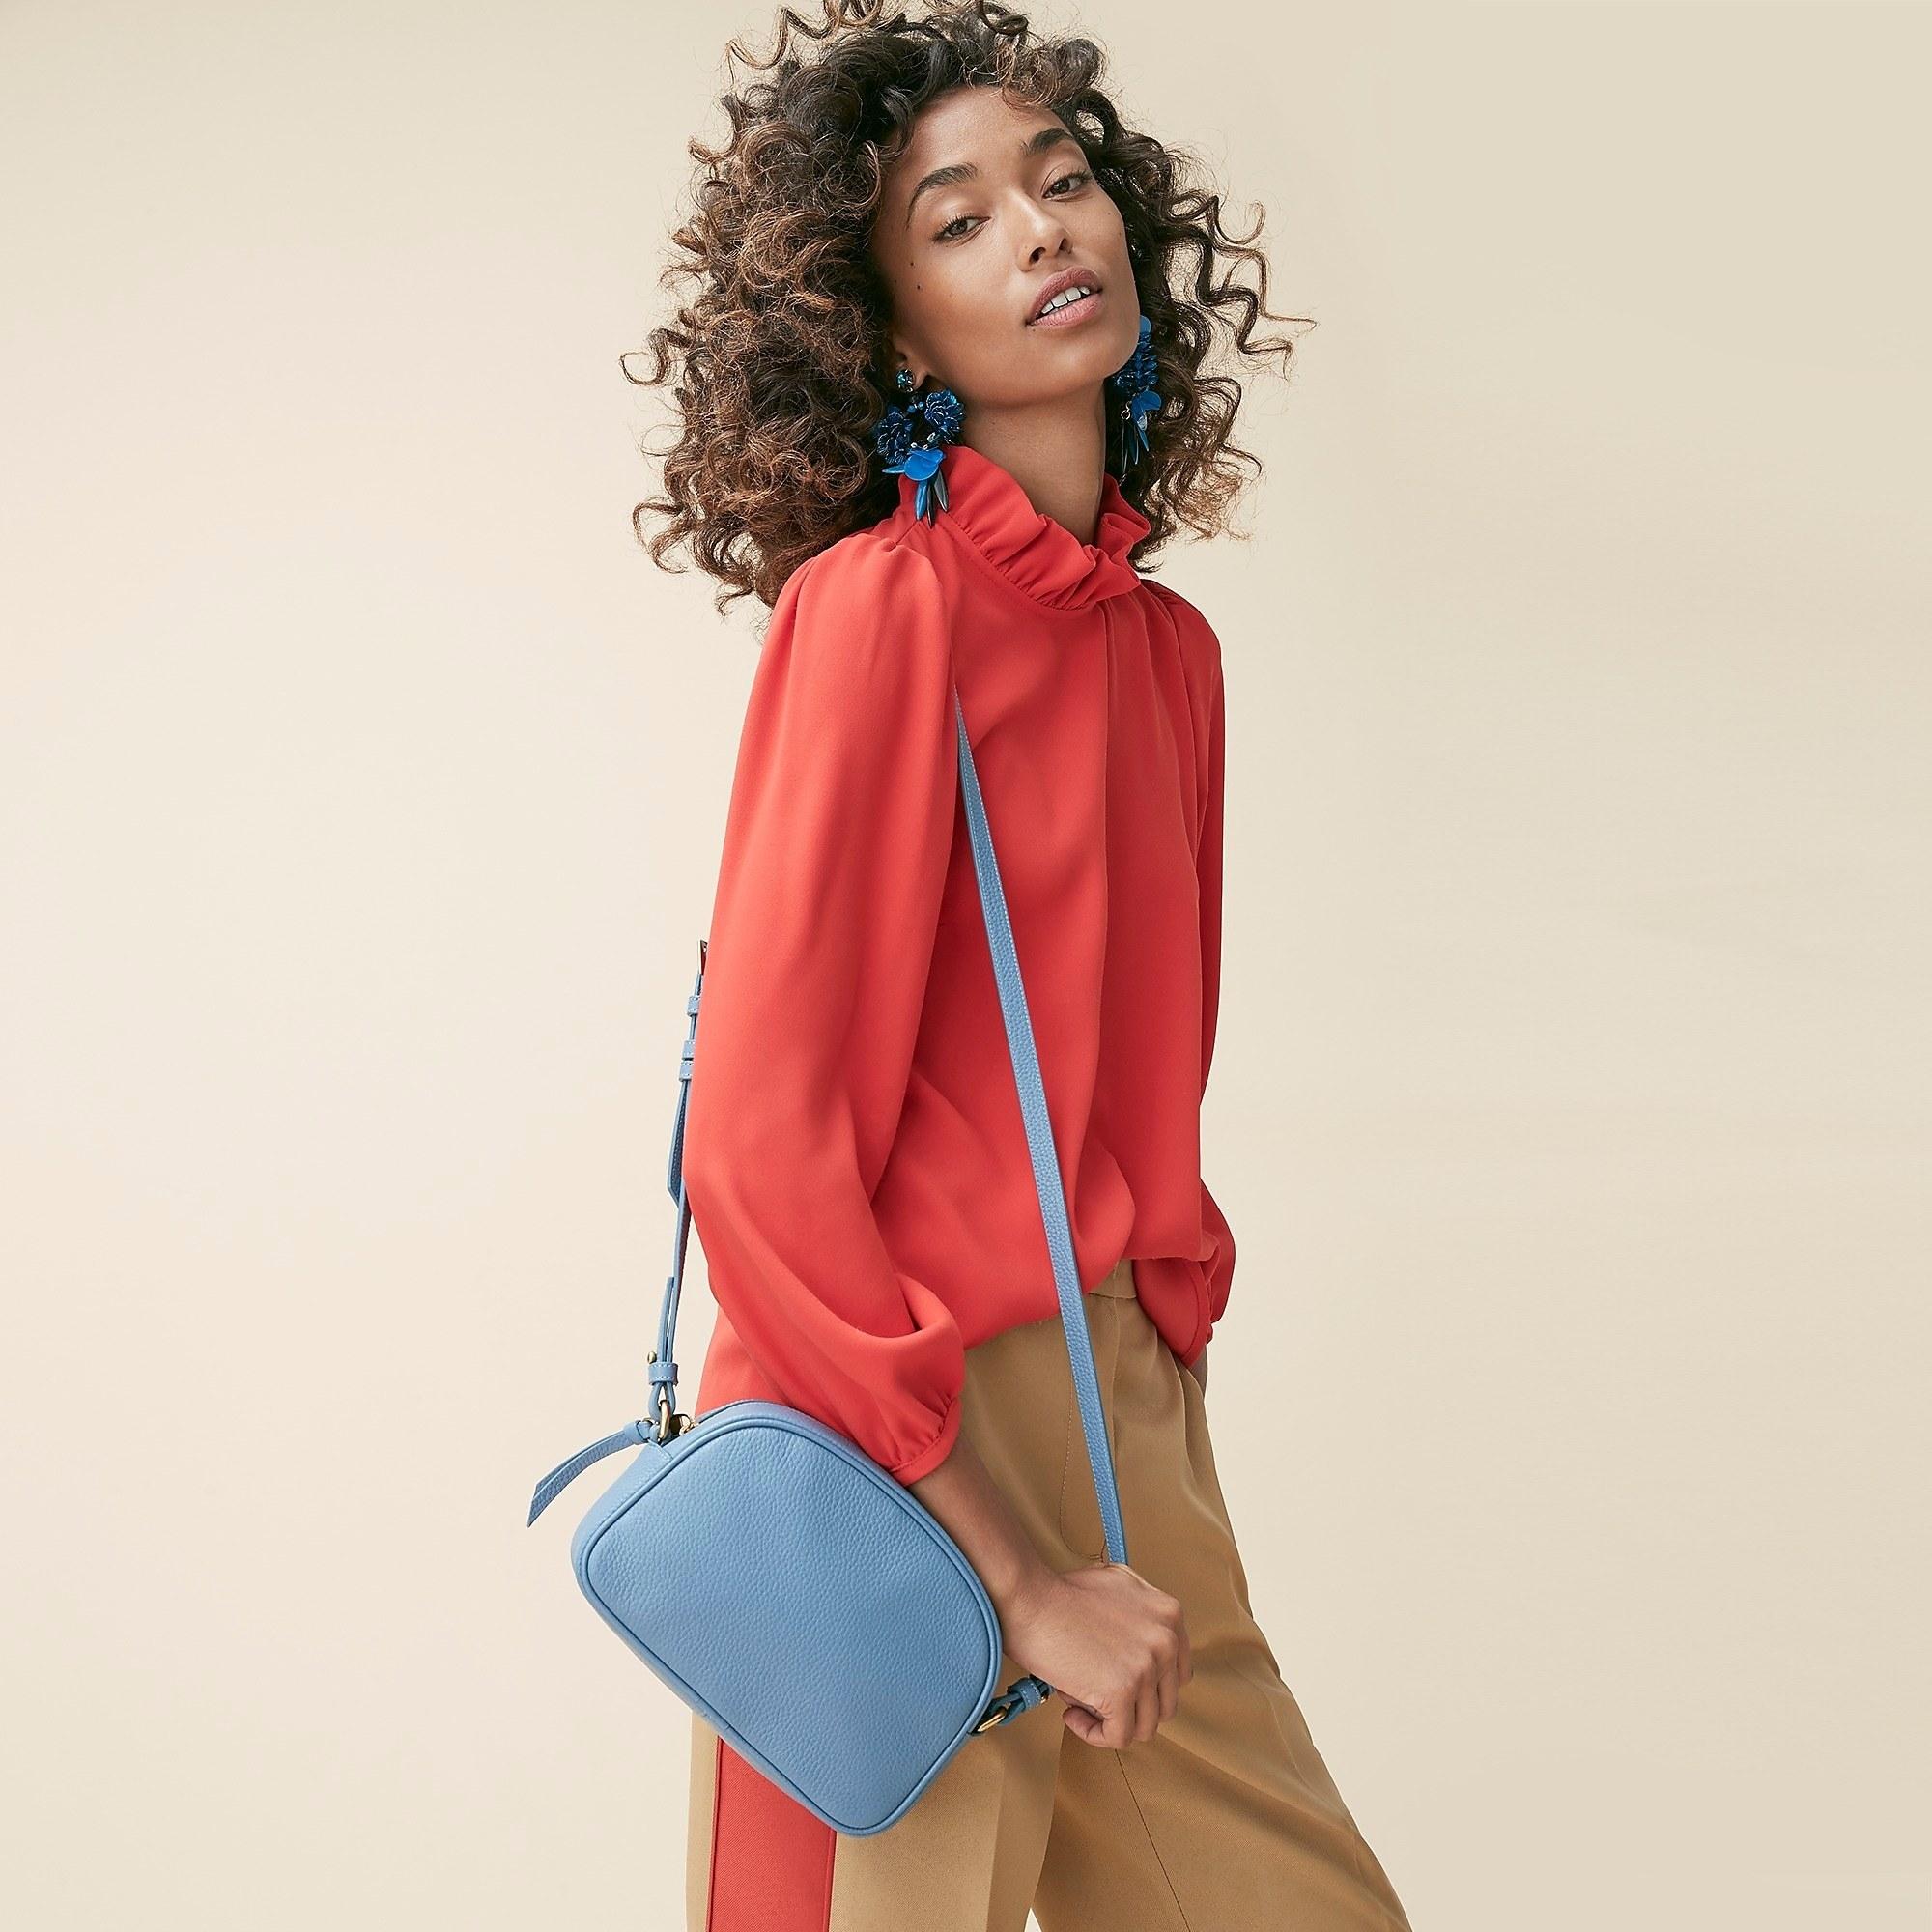 model with blue leather bag with long strap